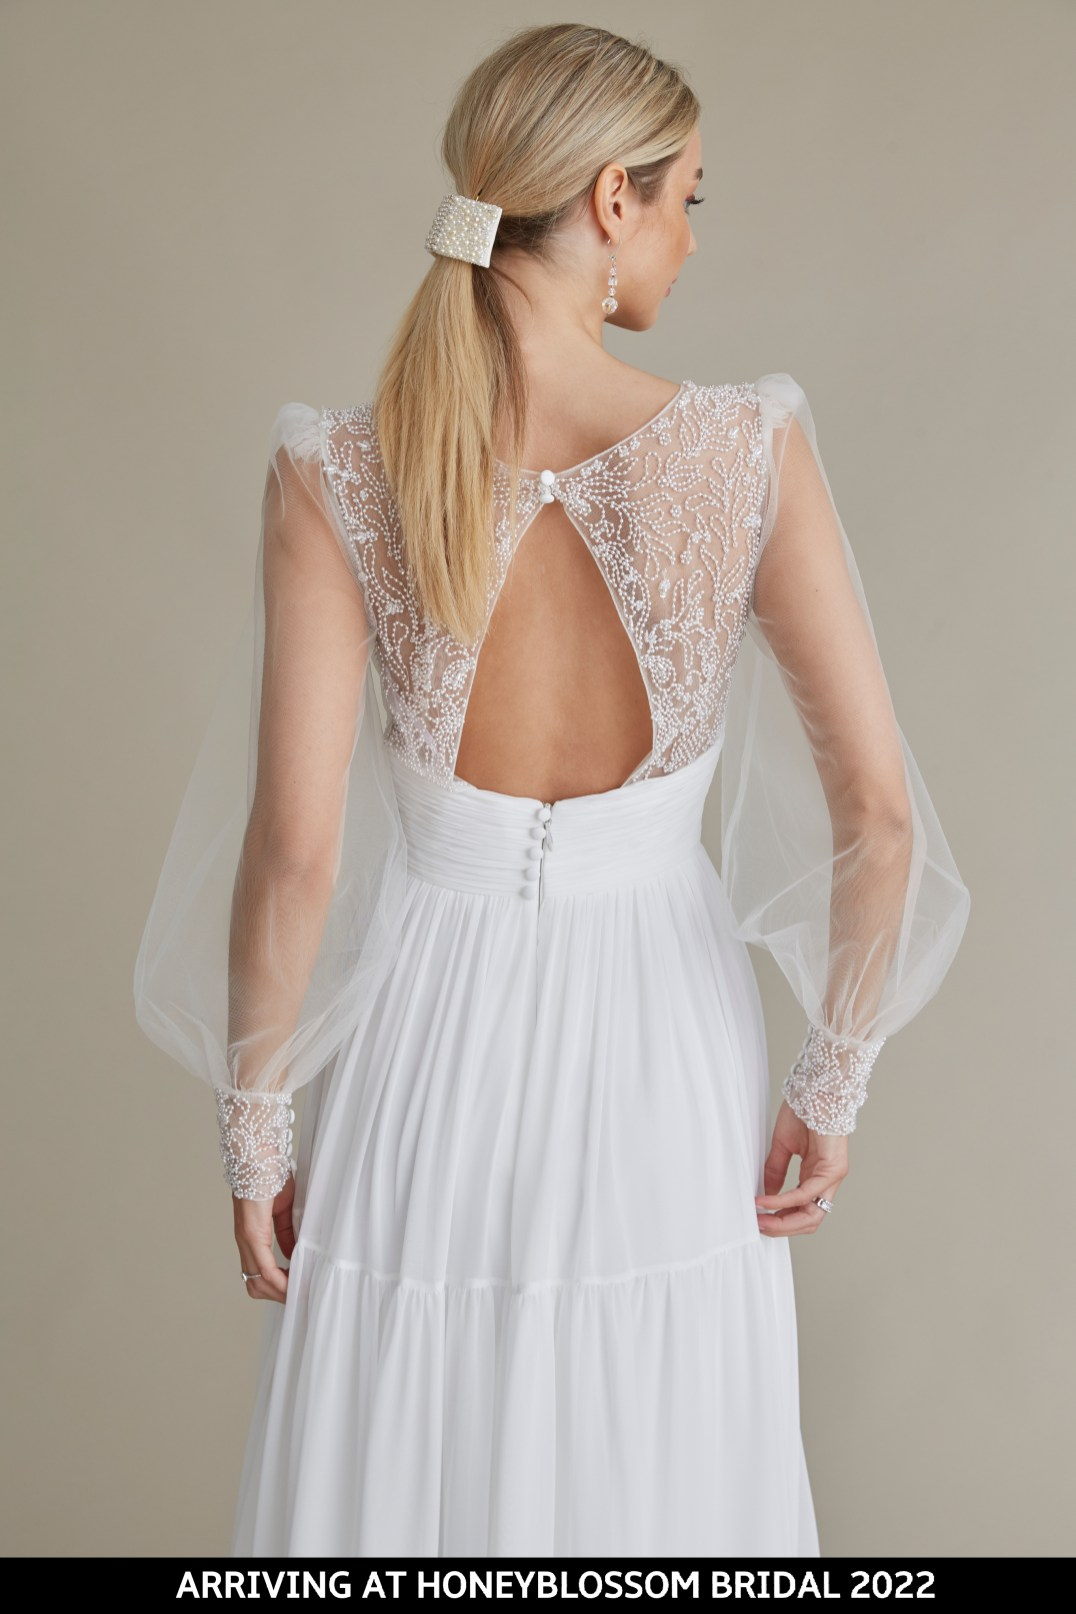 MiaMia Billie bridal gown arriving soon to Honeyblossom Bridal